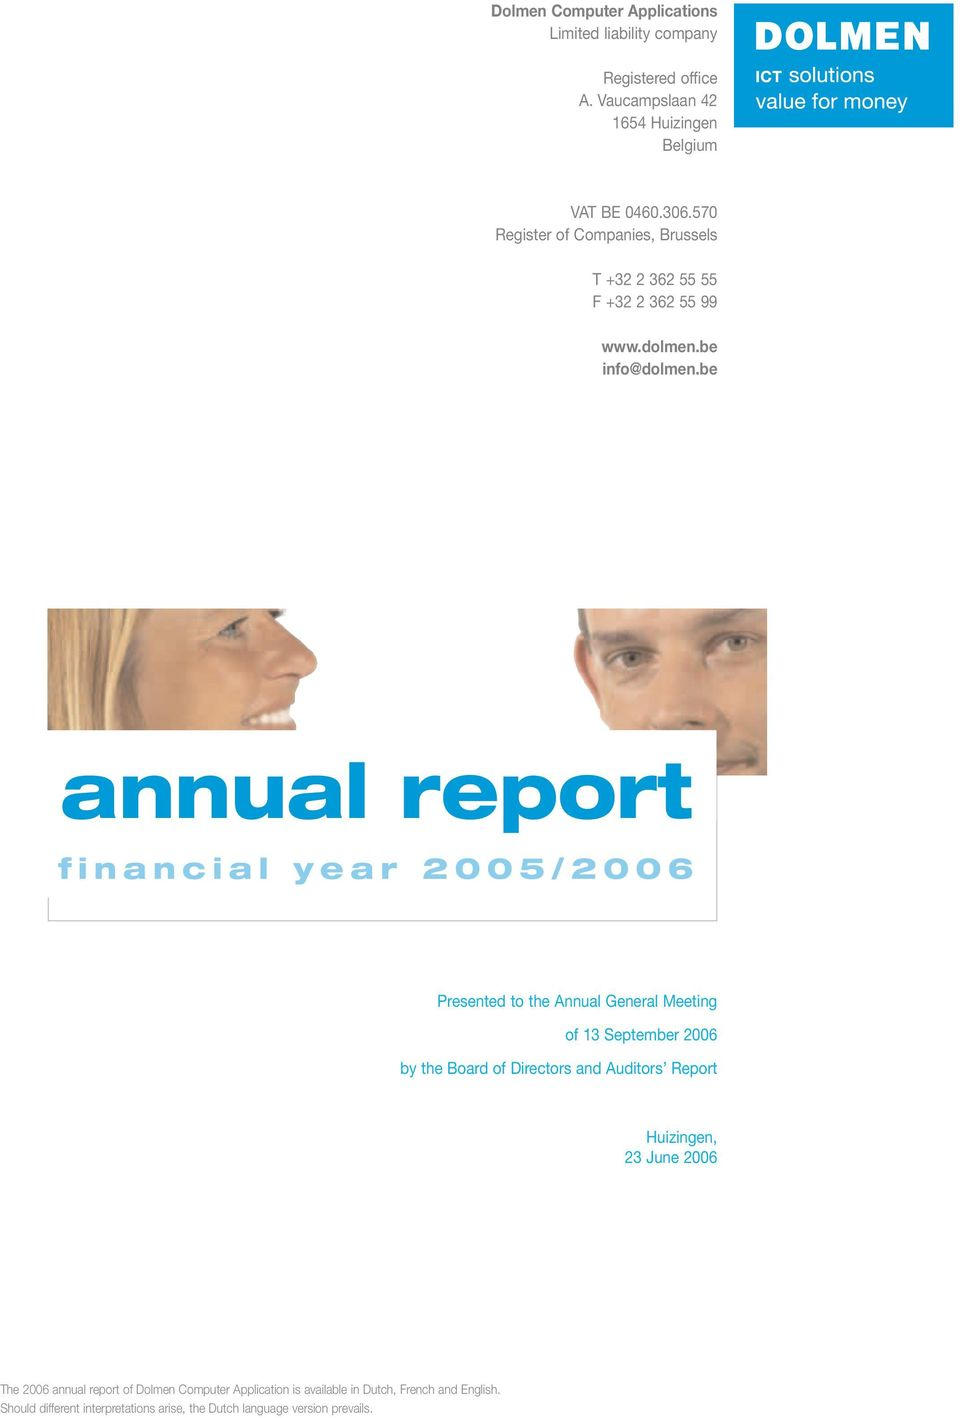 be annual report financial year 2005/2006 Presented to the Annual General Meeting of 13 September 2006 by the Board of Directors and Auditors